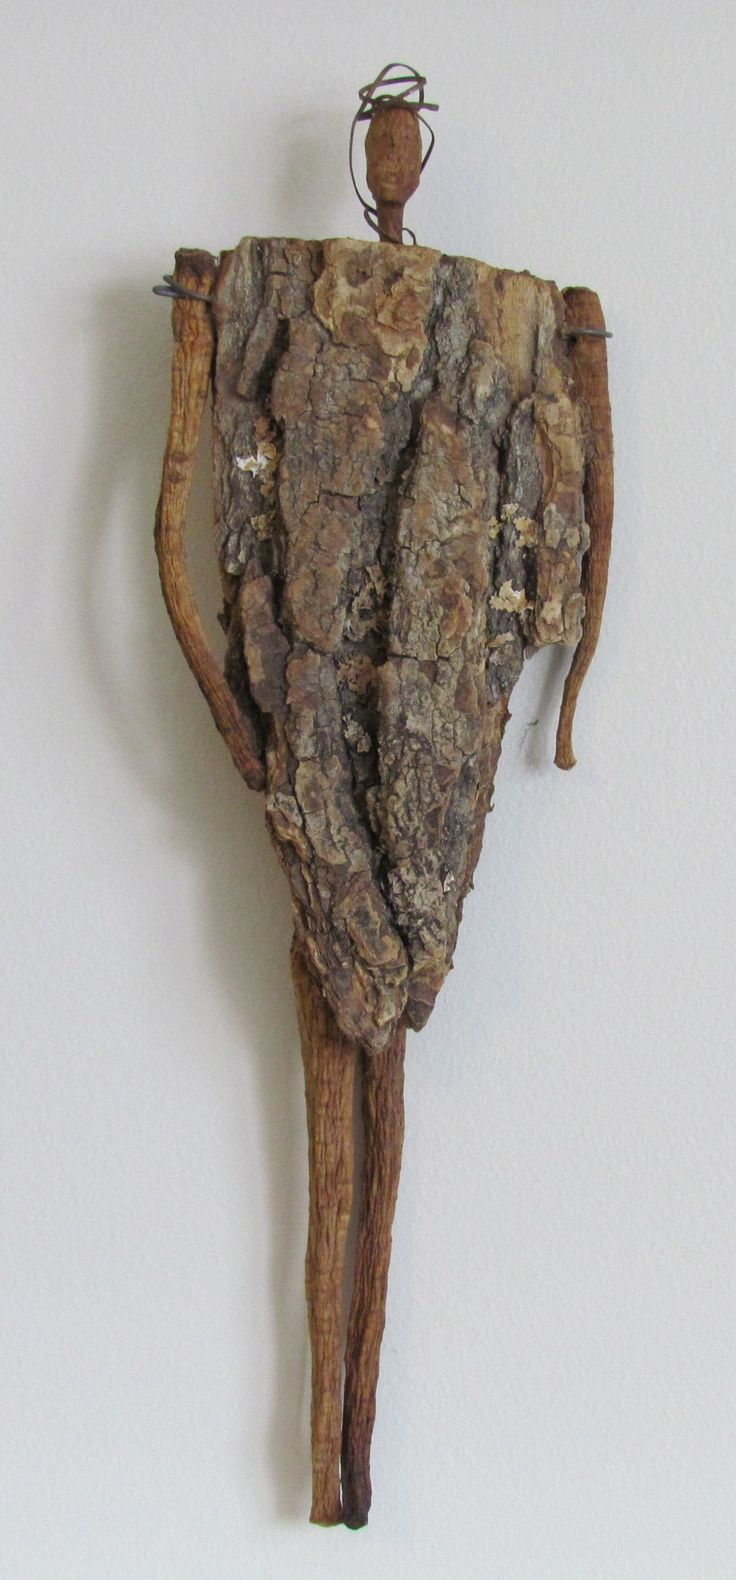 Sculpture out of found, natural objects